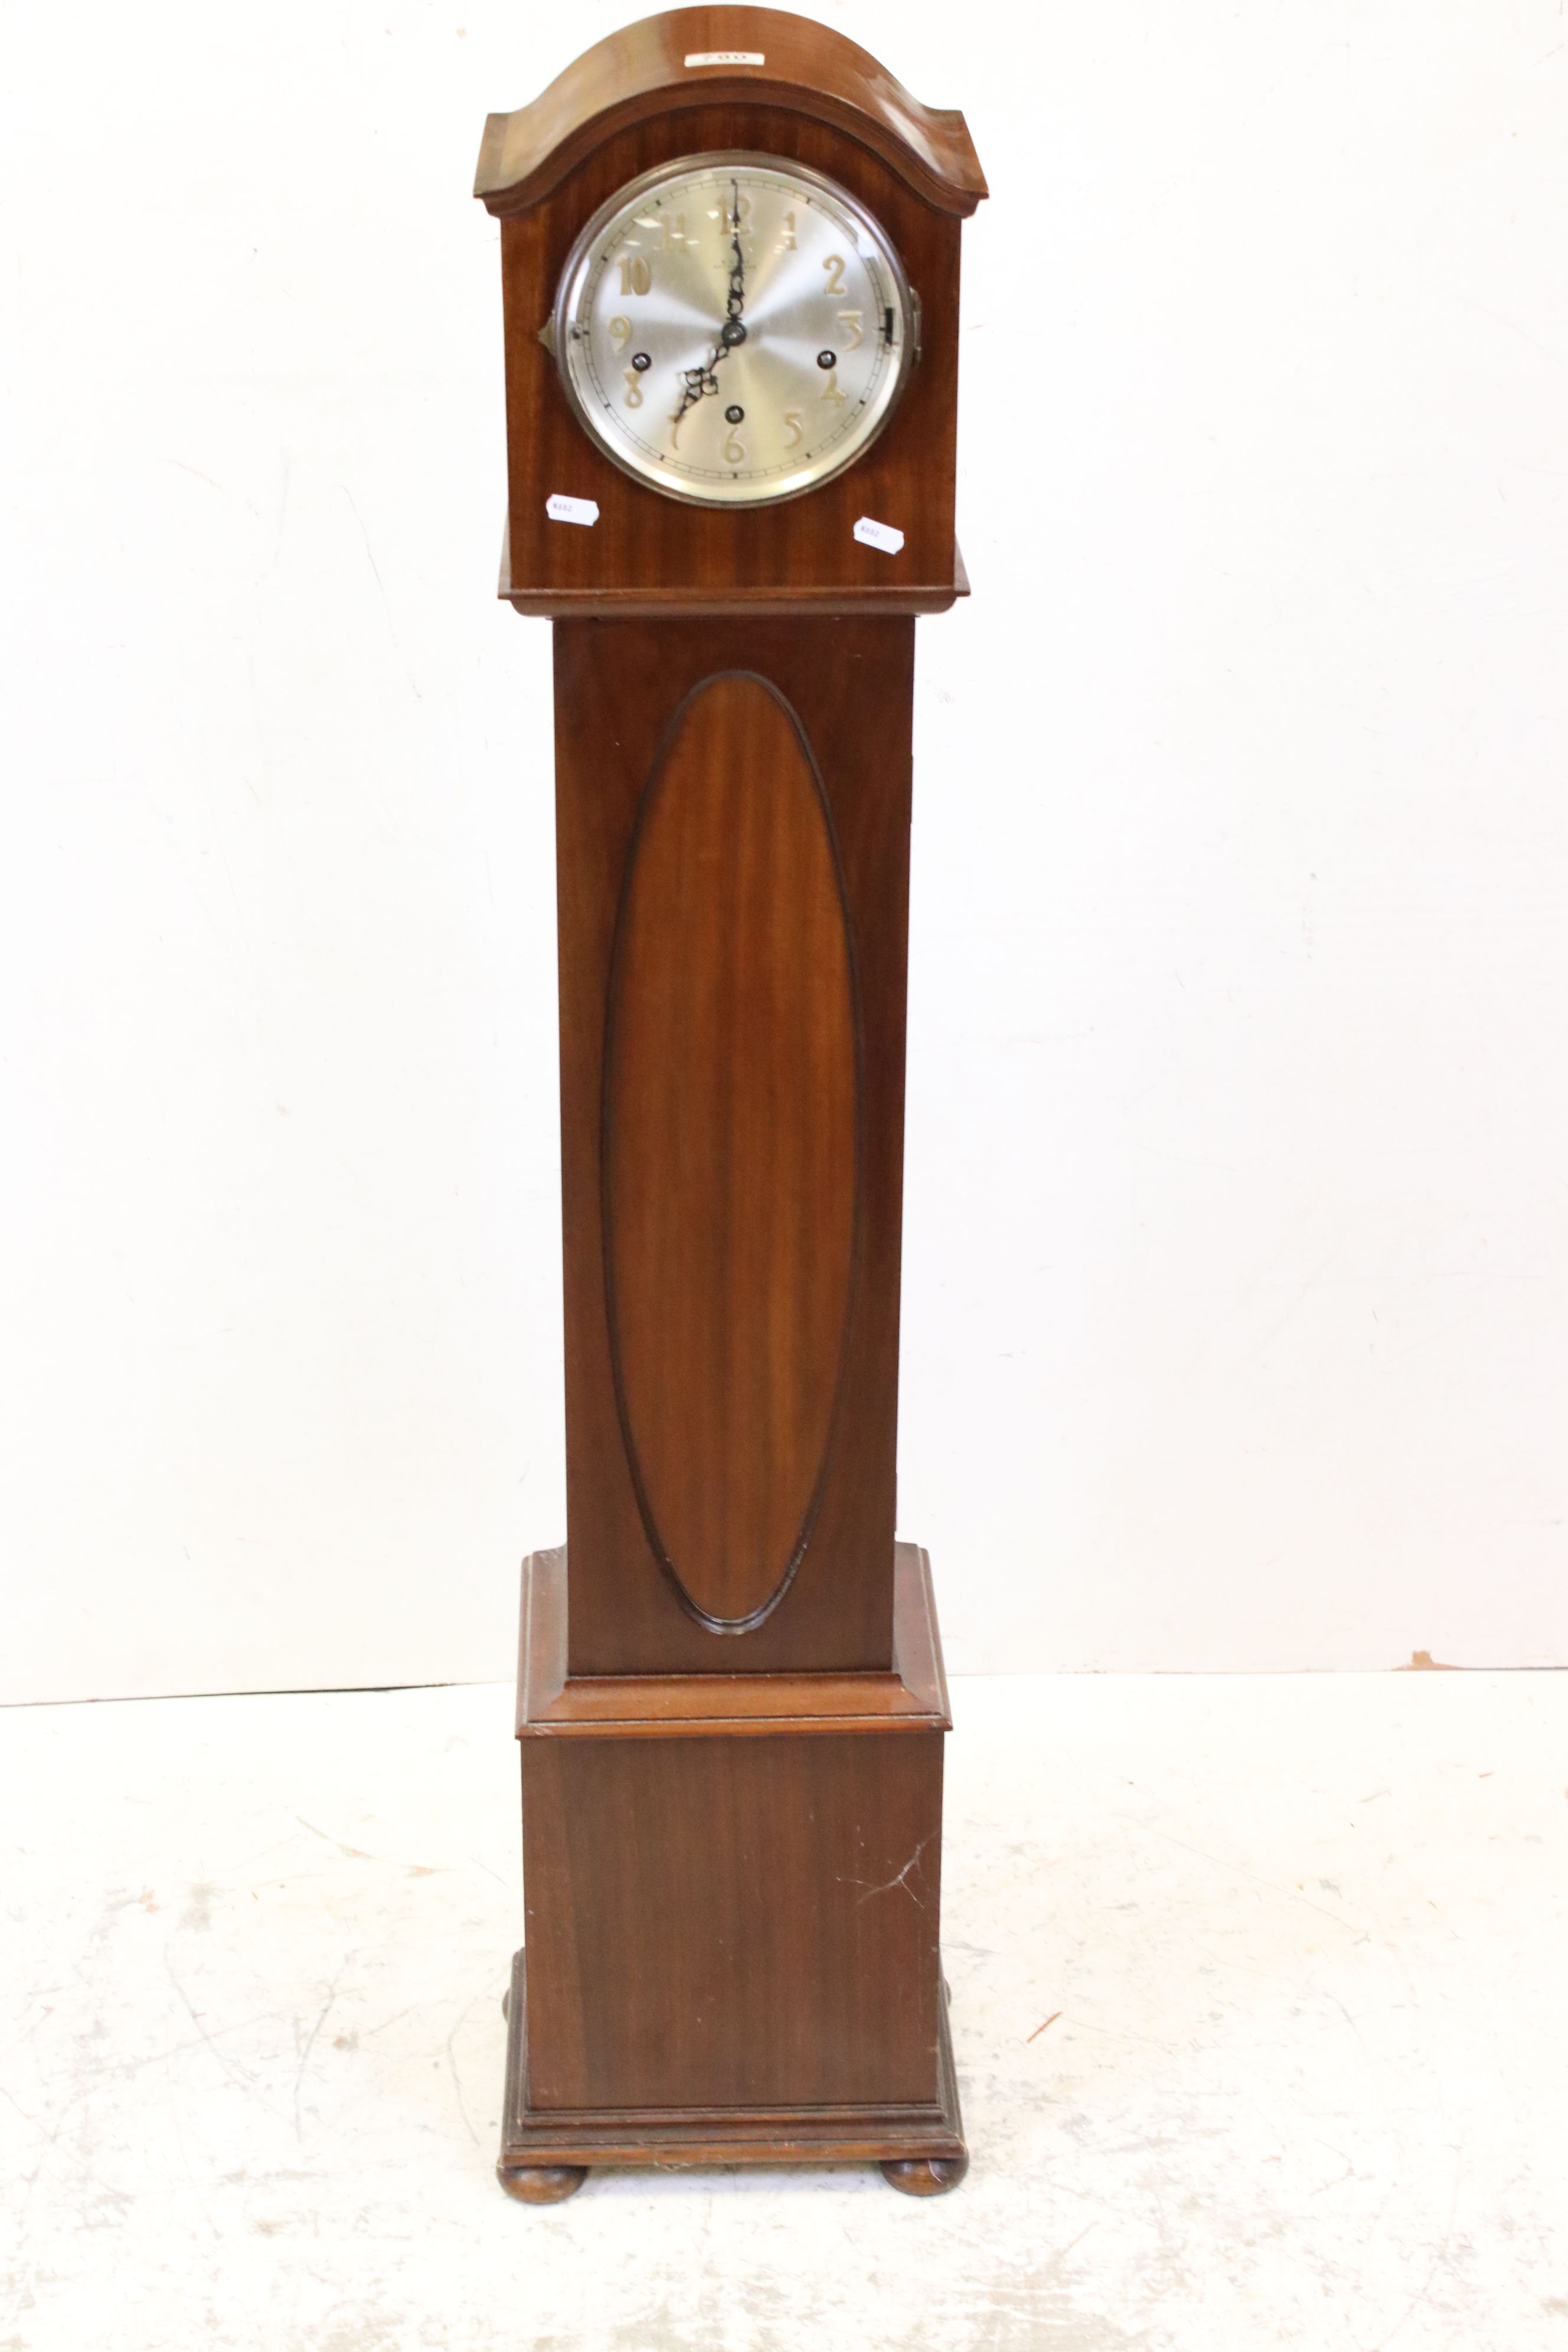 Early 20th century Mahogany Cased Grandmother Clock, the silvered face with Arabic numerals and